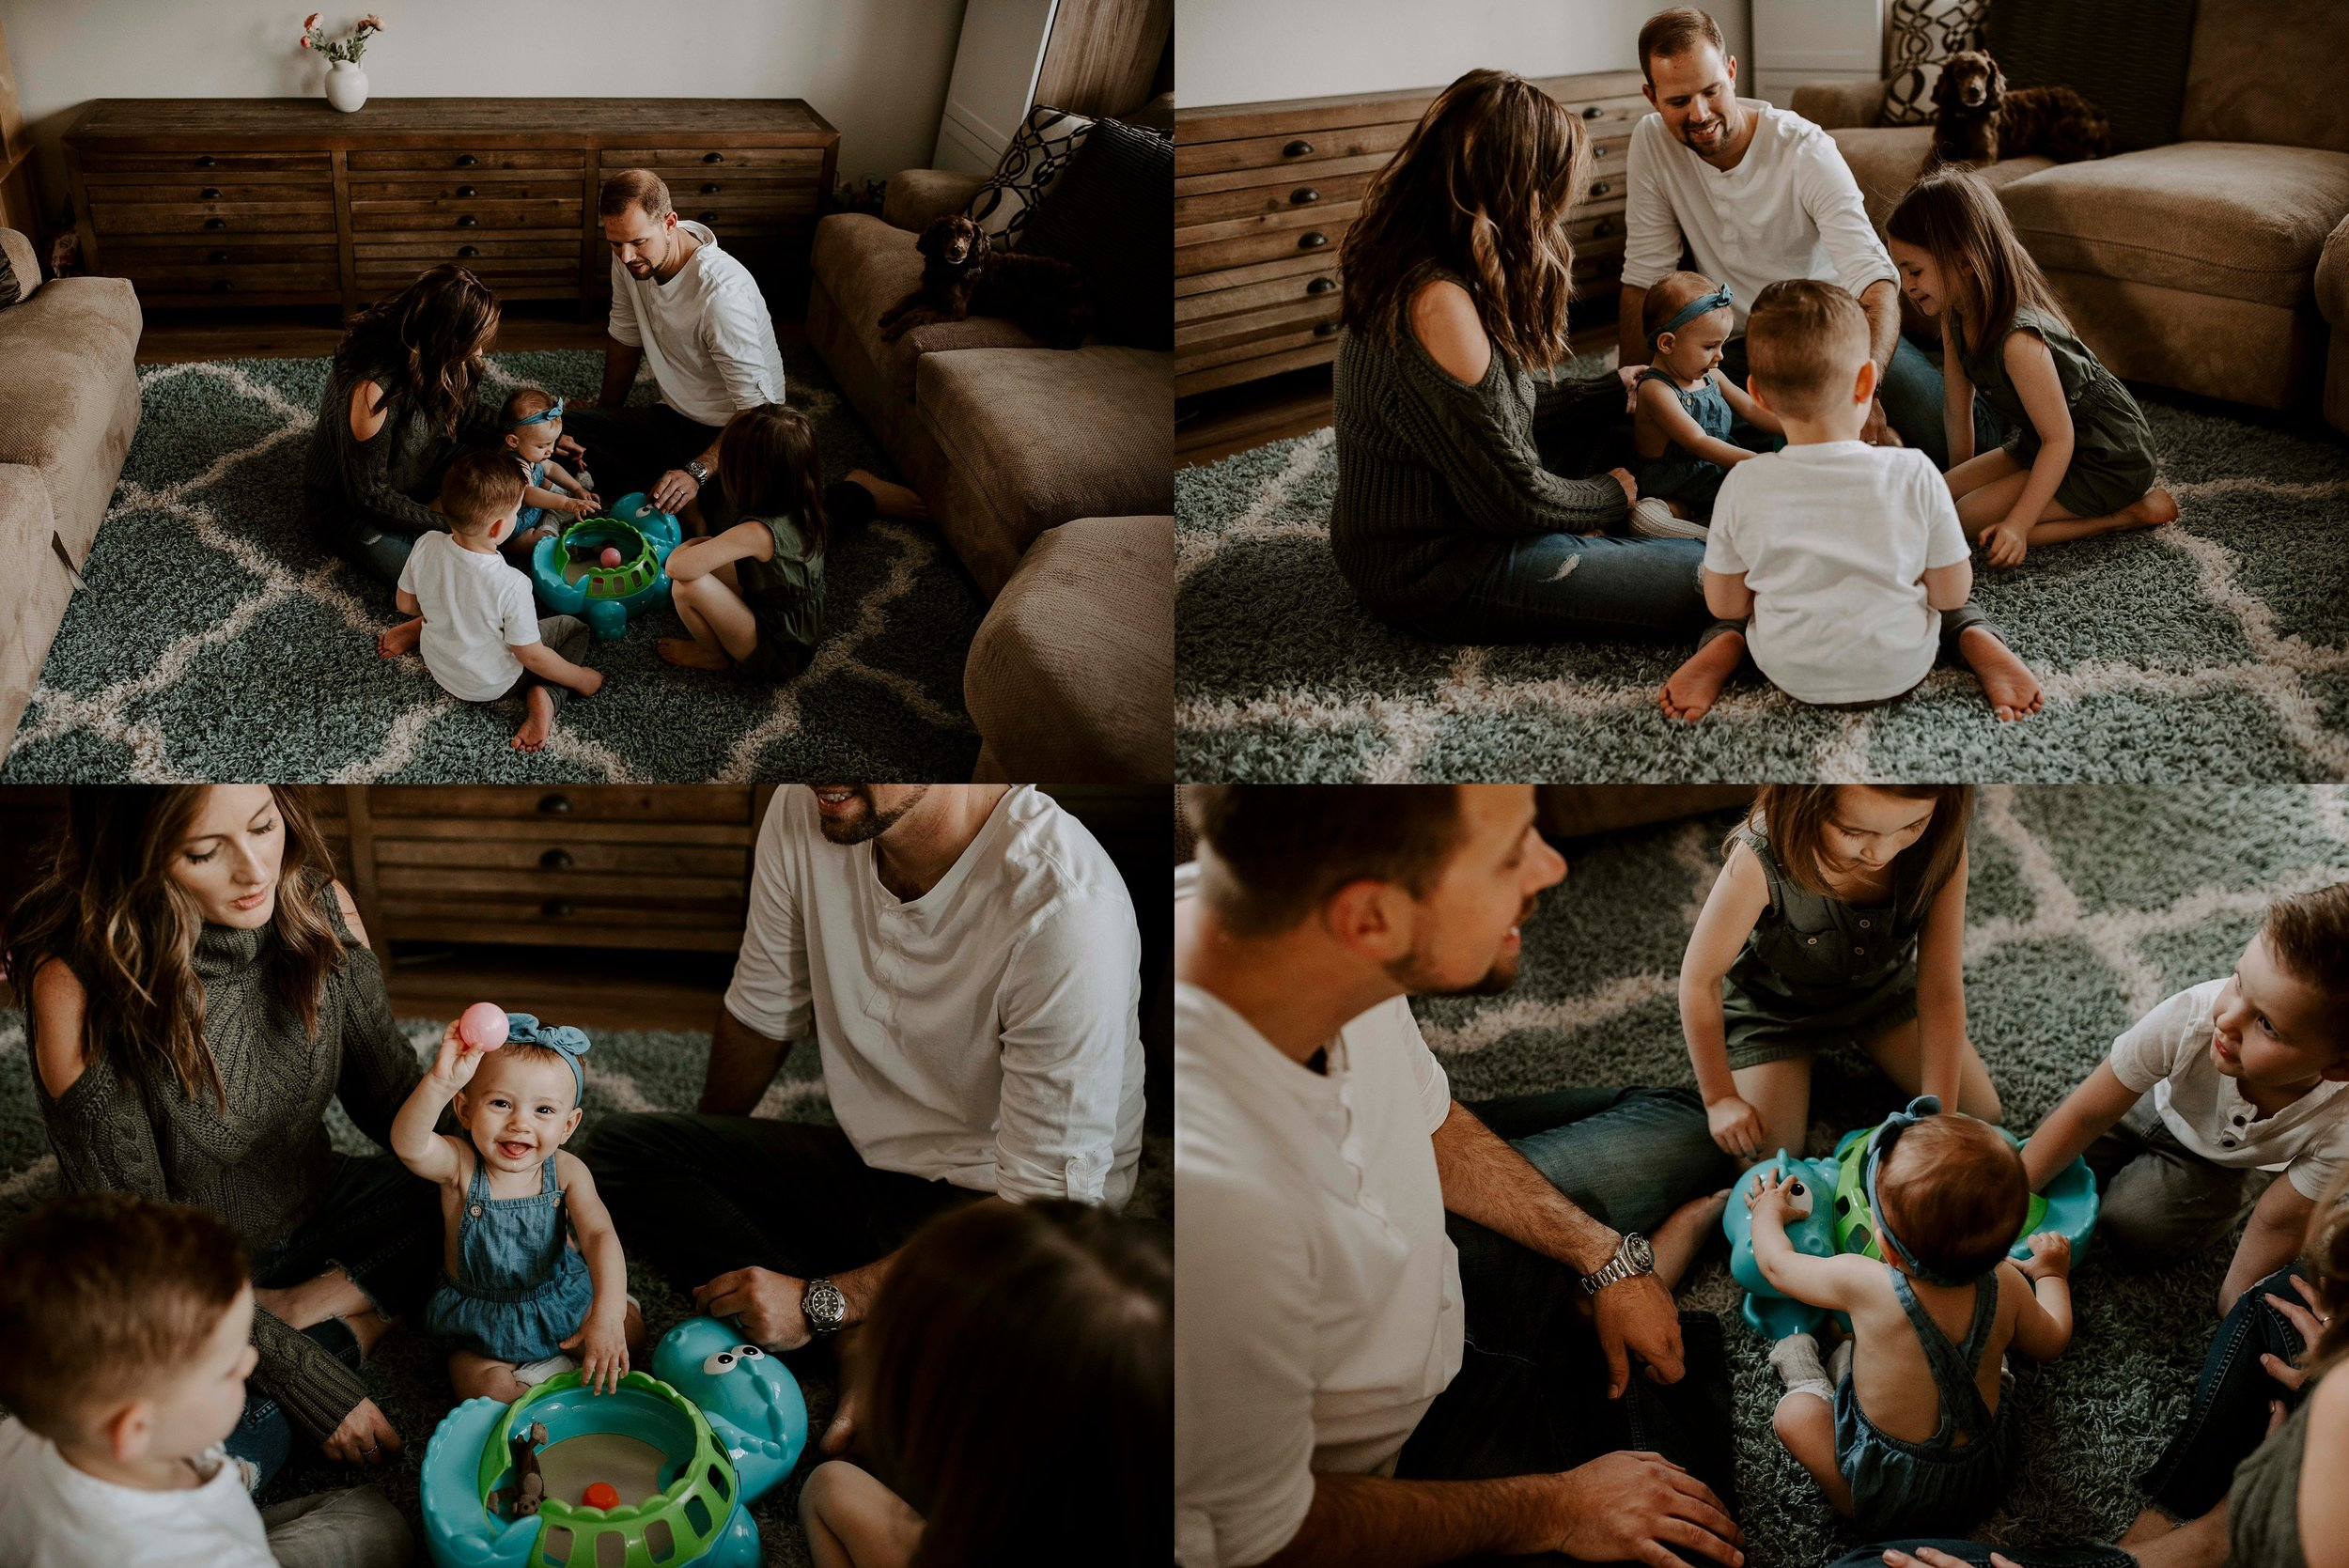 Their element, playing with their sweet babies and just enjoying the moments that followed.